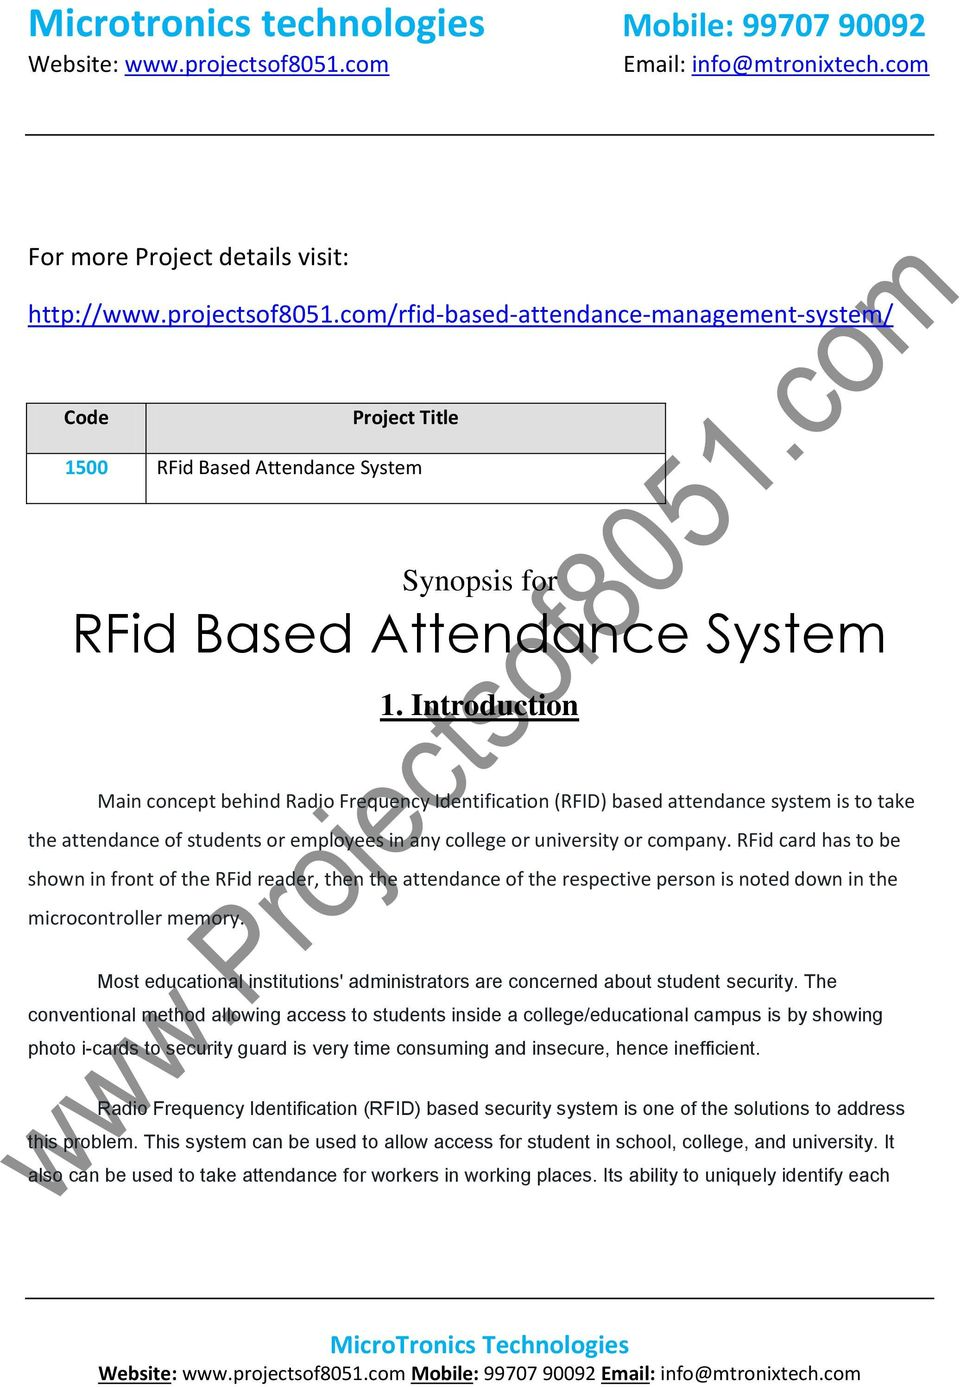 Microtronics Technologies Mobile Pdf Based Industrial Device Controlling Using Bluetooth Rfid Card Has To Be Shown In Front Of The Reader Then Attendance